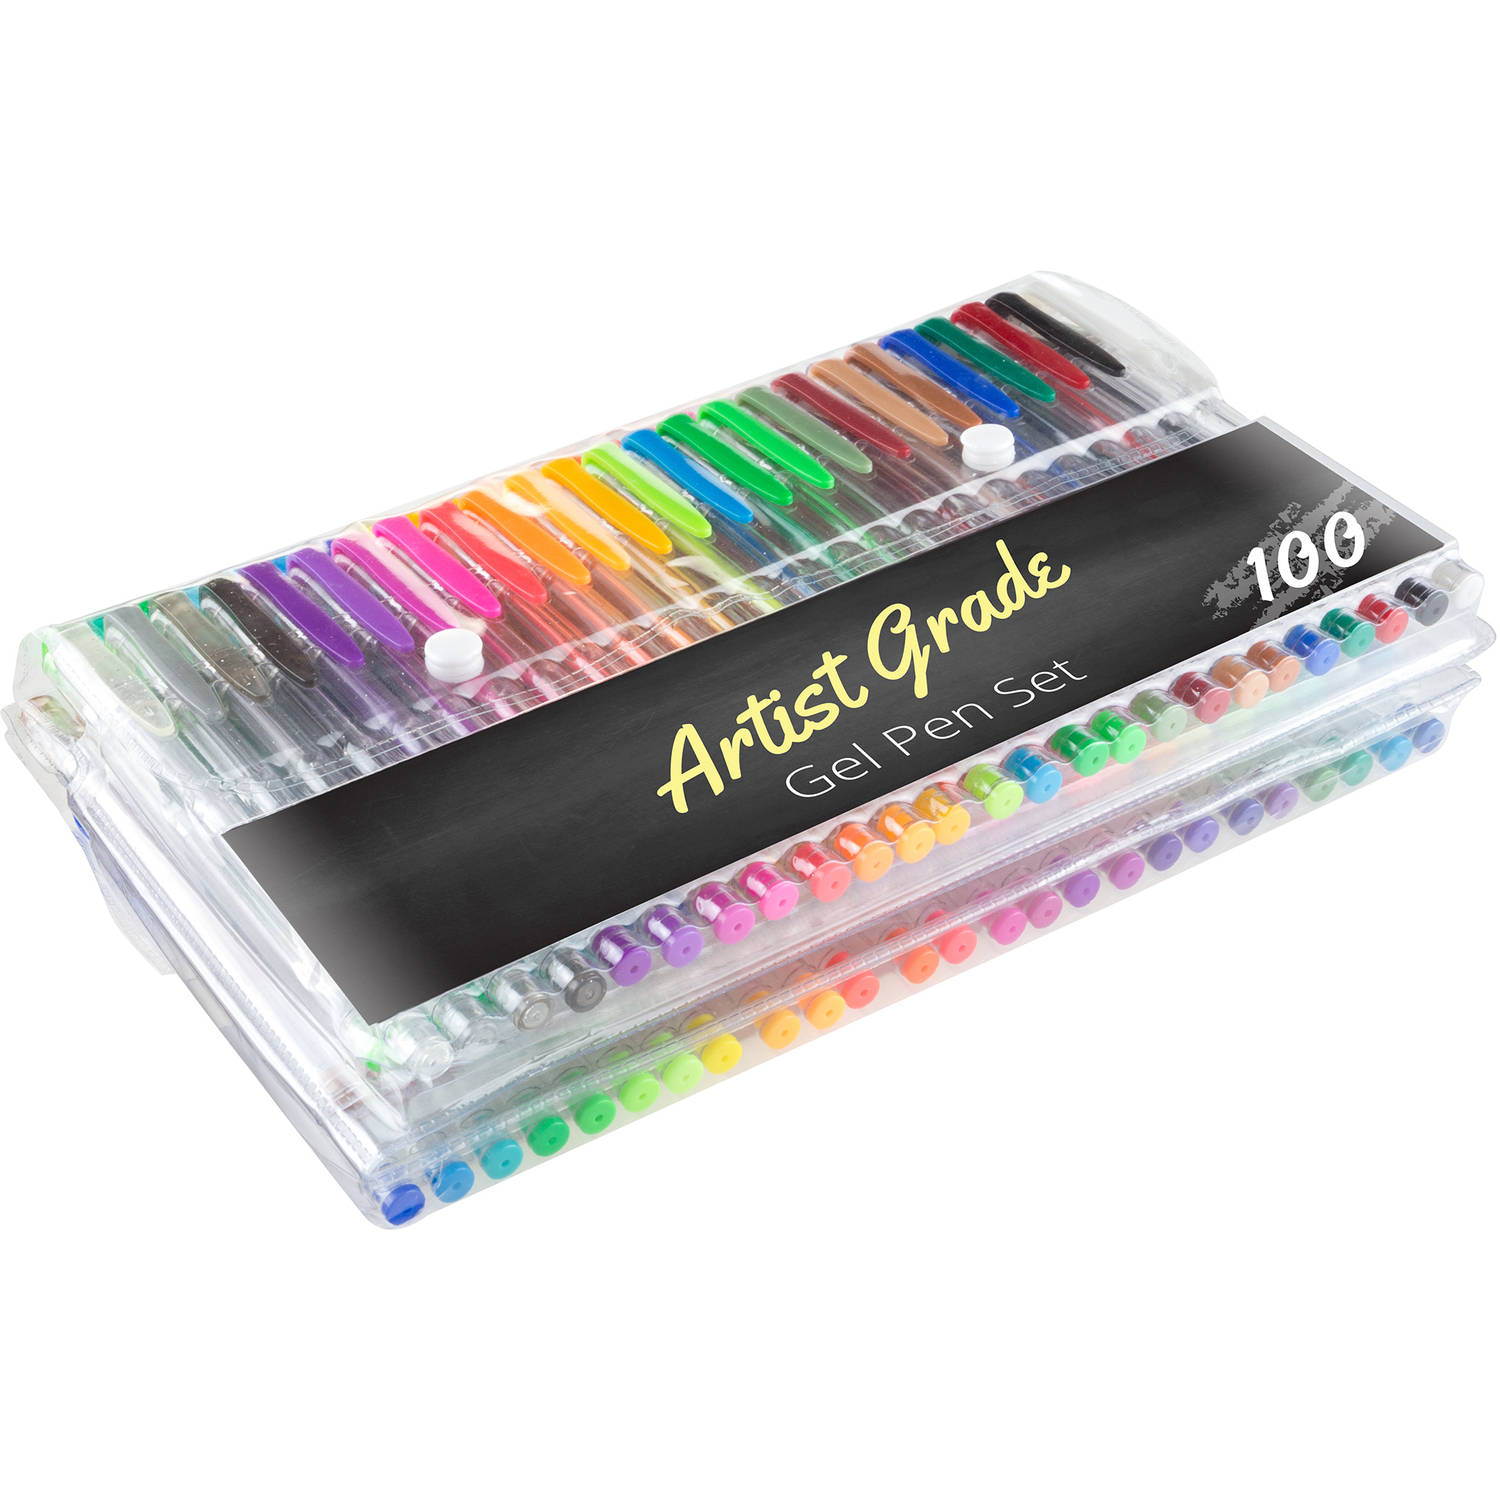 Color Gel Pen Set 100-Count for Adult Coloring Scrapbooking Doodling Comic Animation by Artist Grade